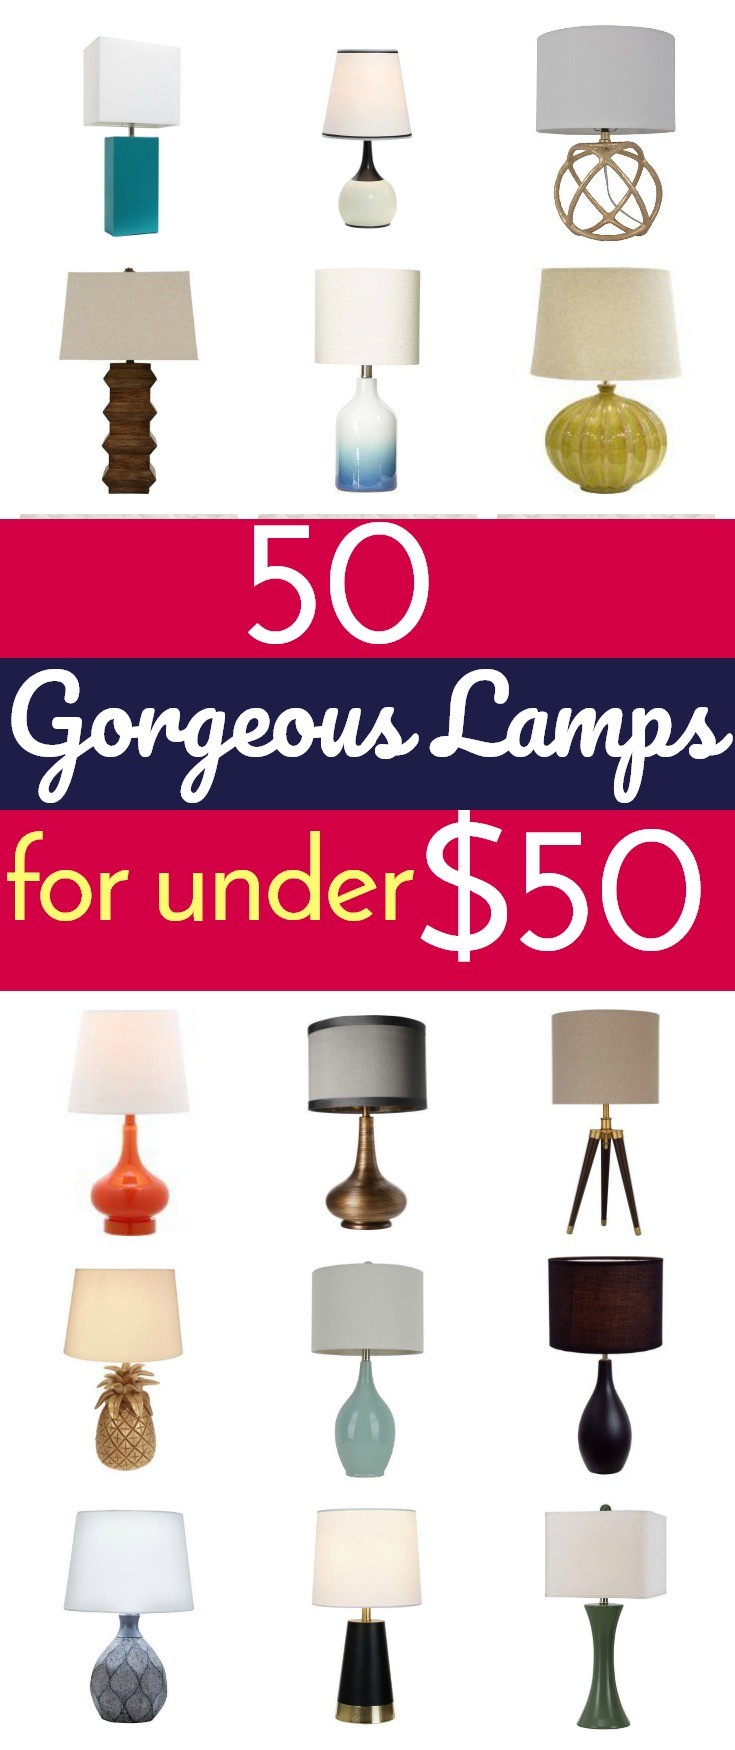 50 Gorgeous Lamps For Under $50   Where To Buy Gorgeous And Affordable Lamps